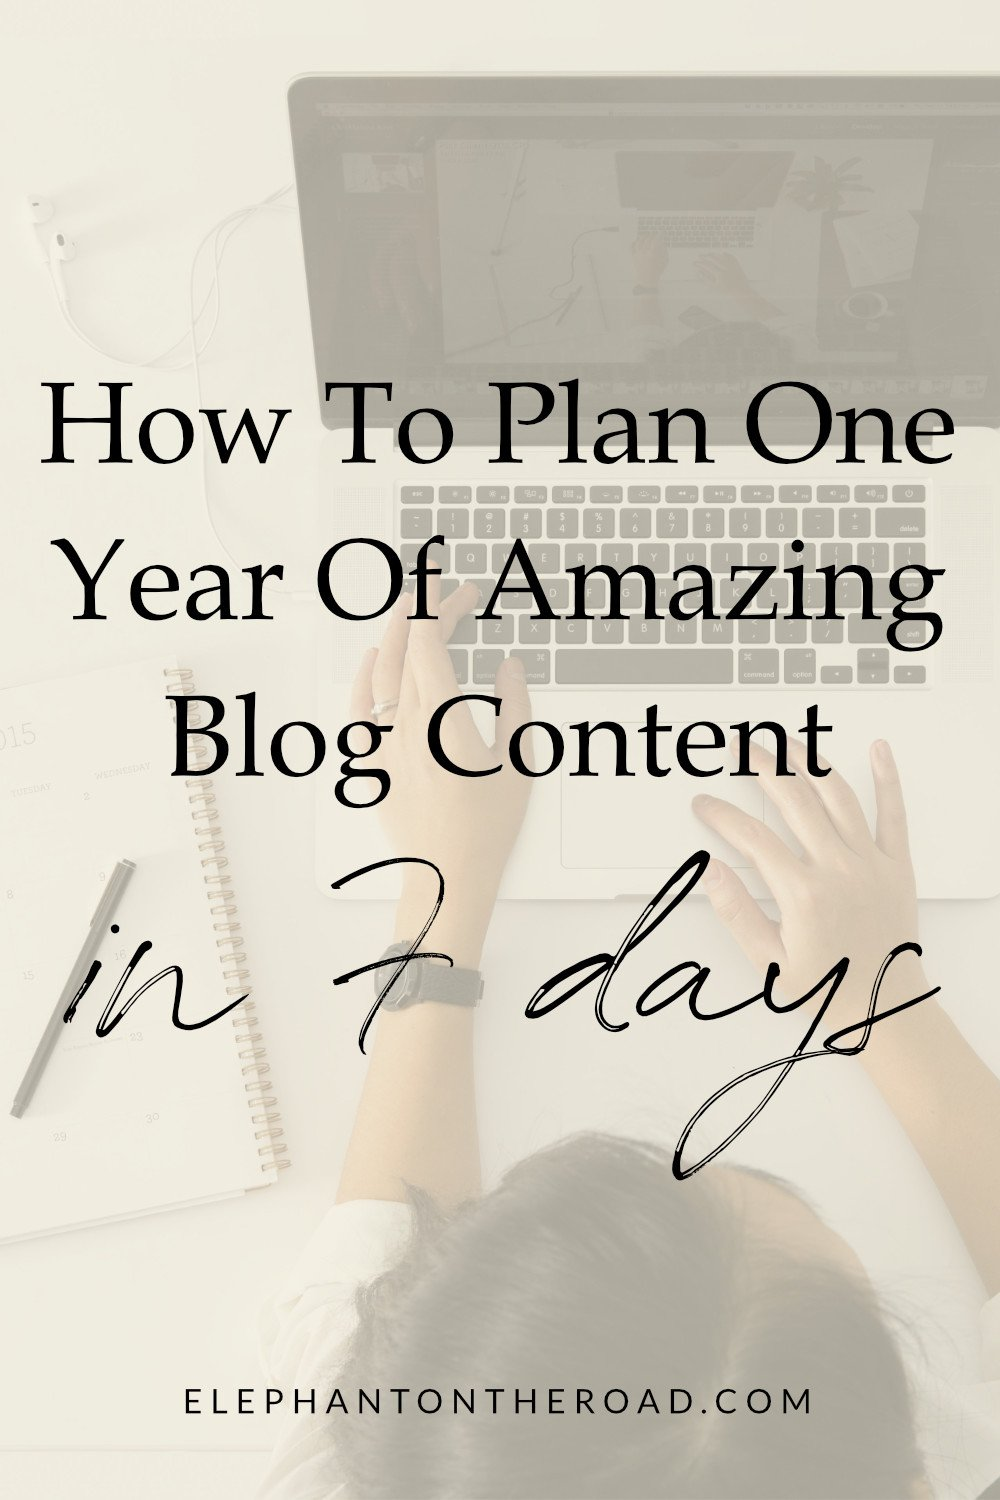 How To Plan One Year Of Amazing Blog Content In 7 Days. Content Calendar For Blog. Blog Post Ideas. Blogging Tips For Beginners. Organization Tips For Bloggers. Blog Tips For Beginners. Lifestyle Blog Post Ideas. Elephant on the Road.